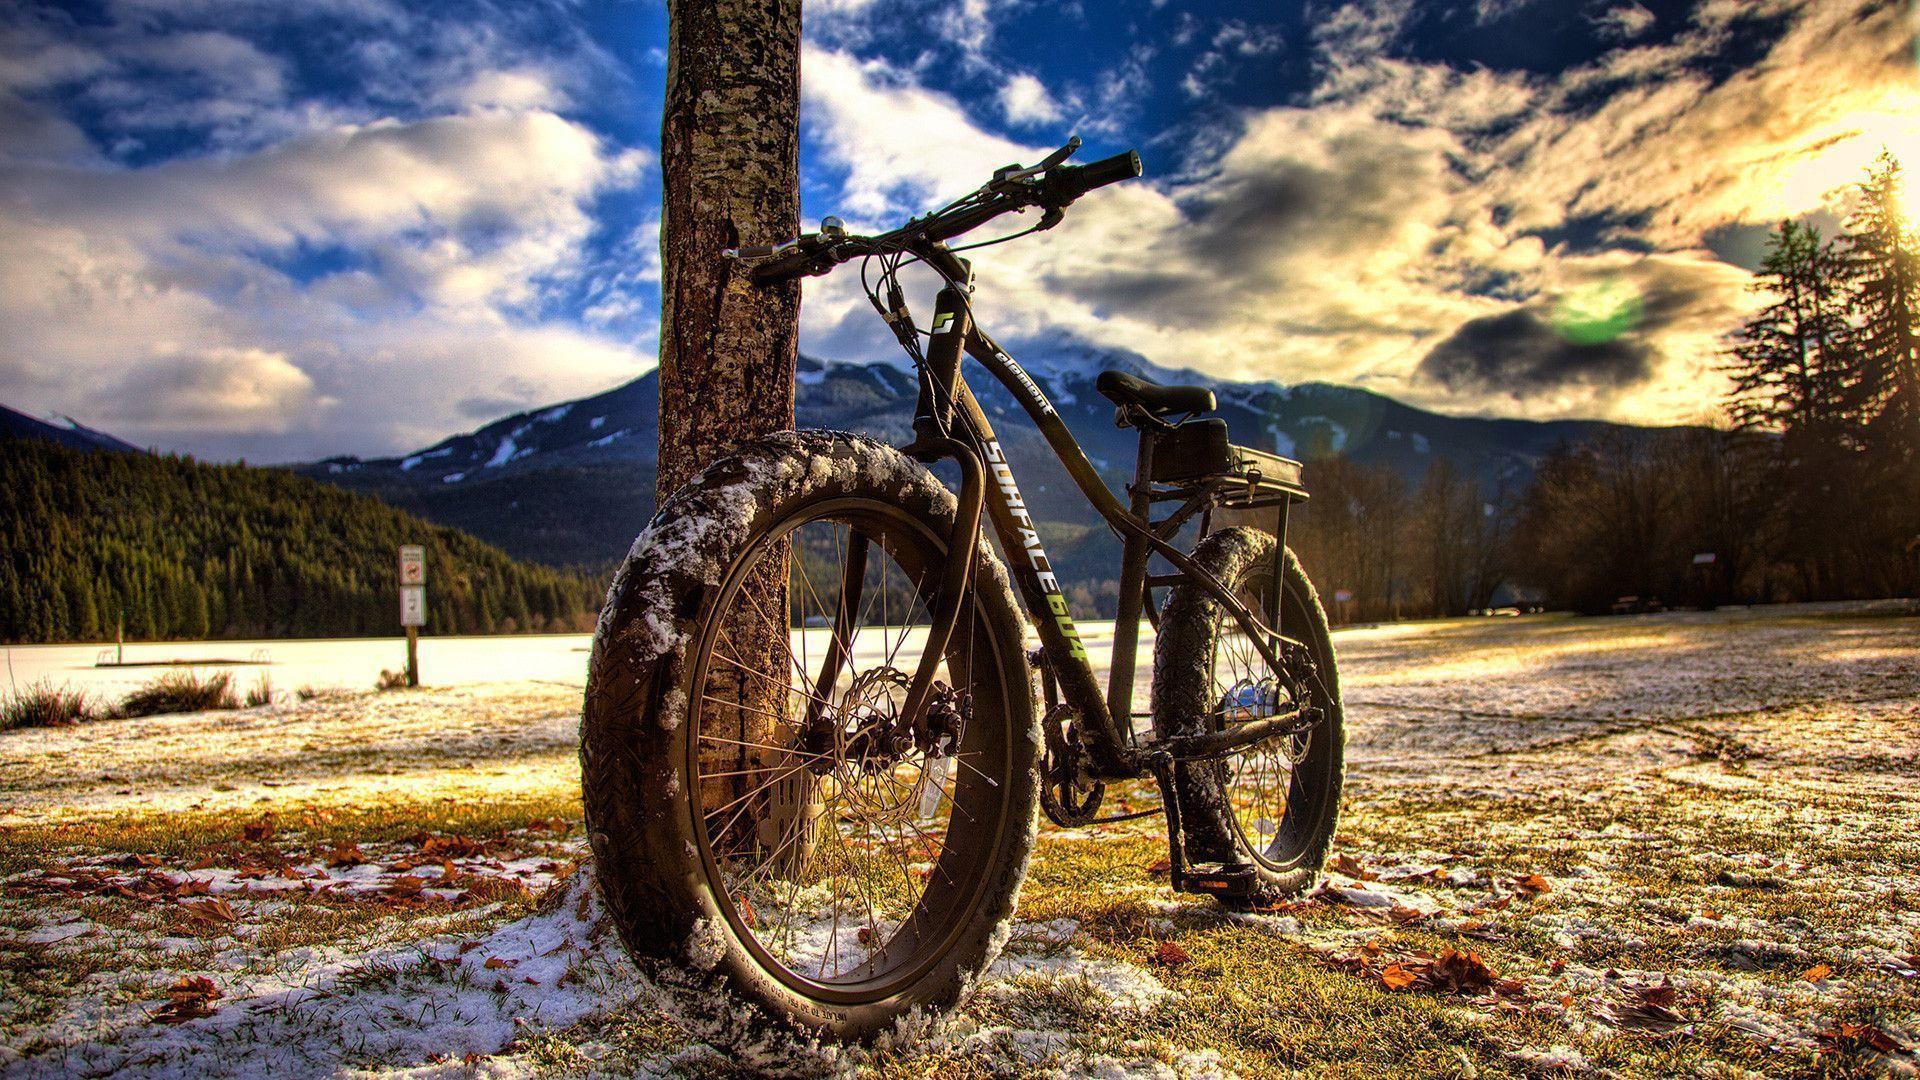 Mountain Road Bike Wallpapers: Downhill Mountain Bike 2017 Wallpapers